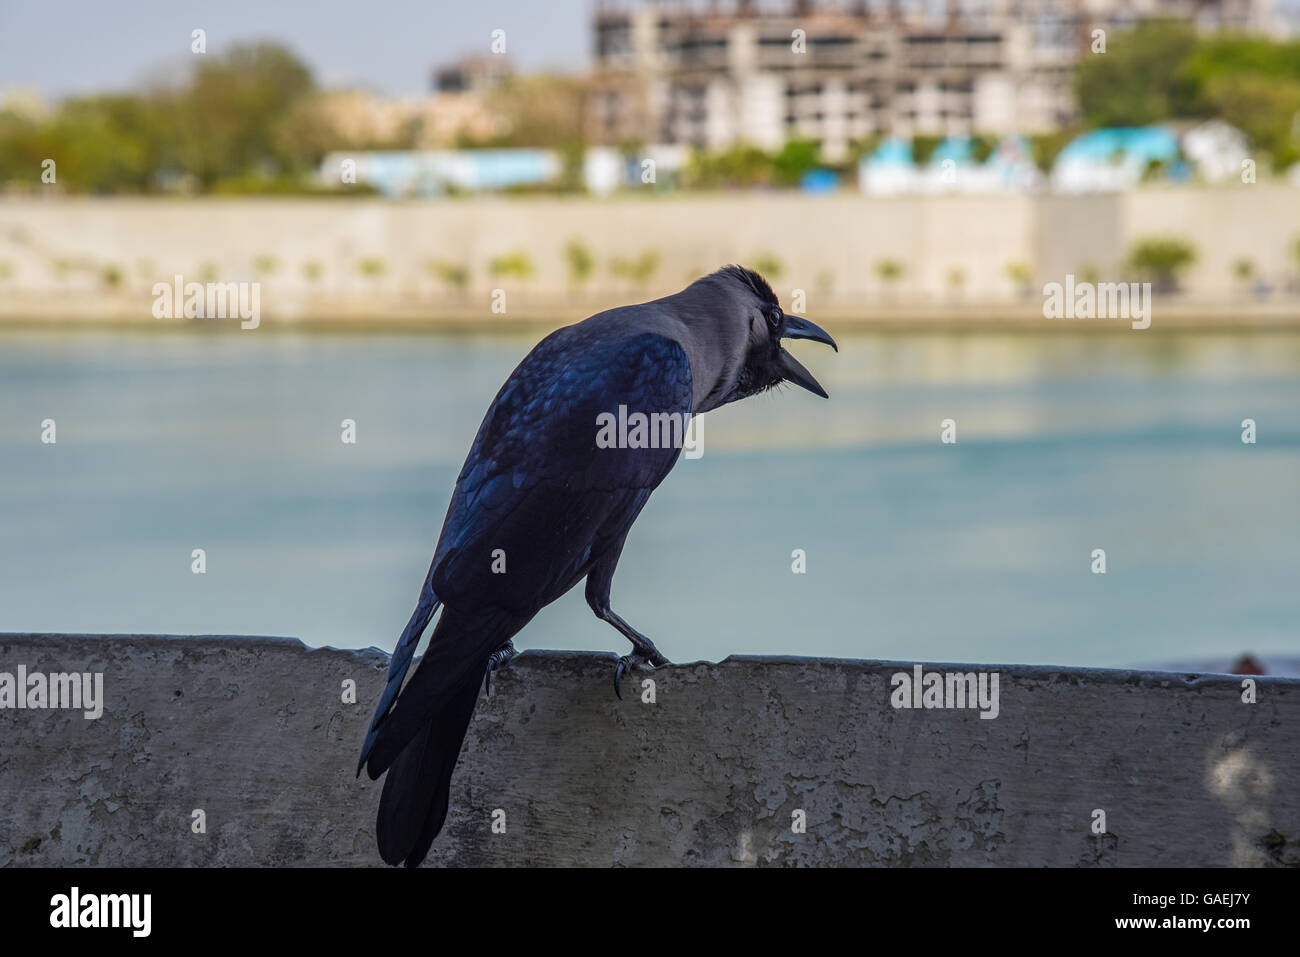 A crow sitting at the walkway of Sabarmati river front in Ahmedabad, India - Stock Image